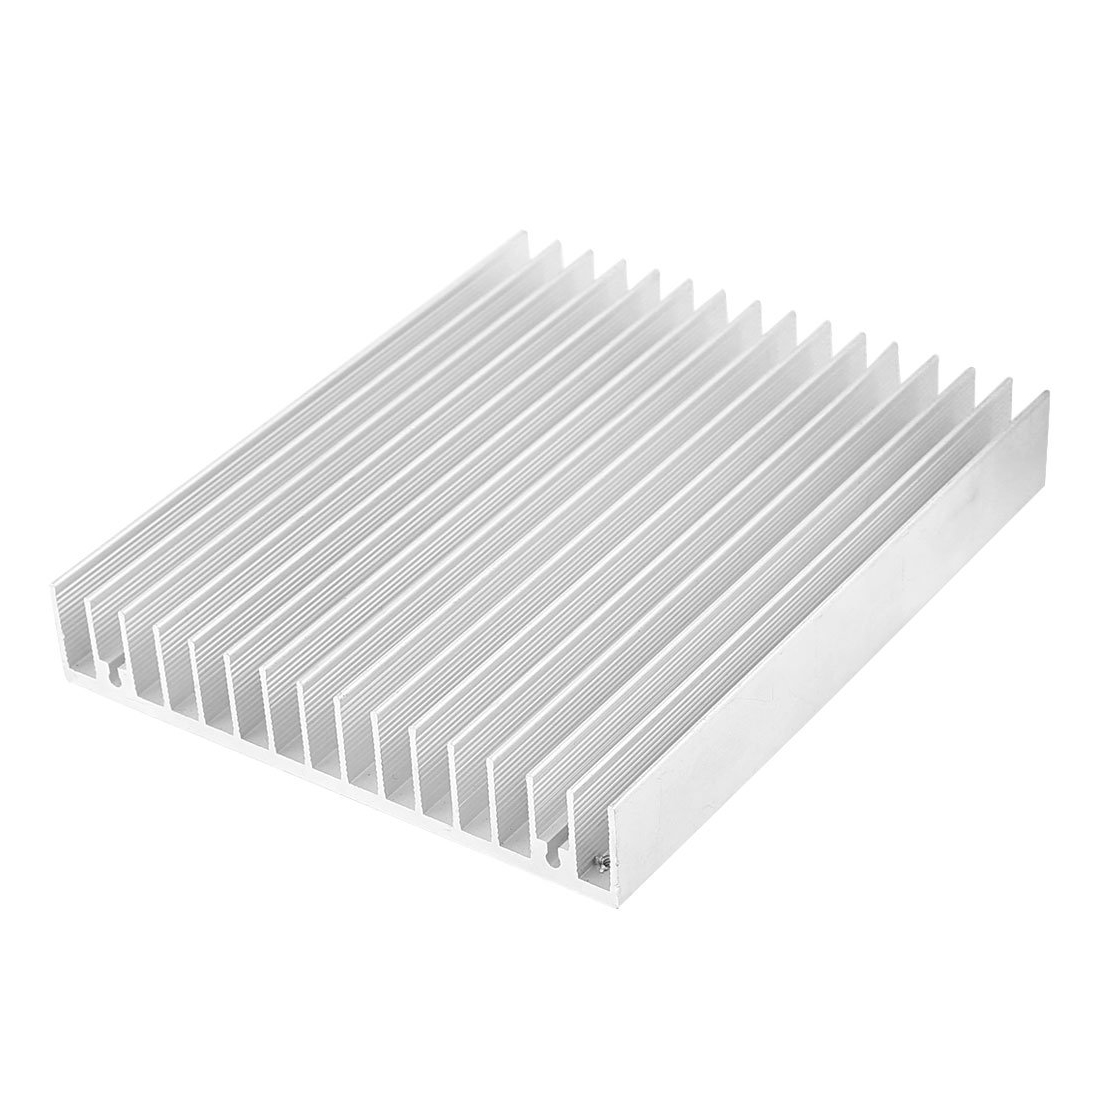 Silver Tone Aluminium Heat Diffuse Heat Sink Cooling Fin 120x100x18mm 75 29 3 15 2mm pure copper radiator copper cooling fins copper fin can be diy longer heat sink radiactor fin coliing fin